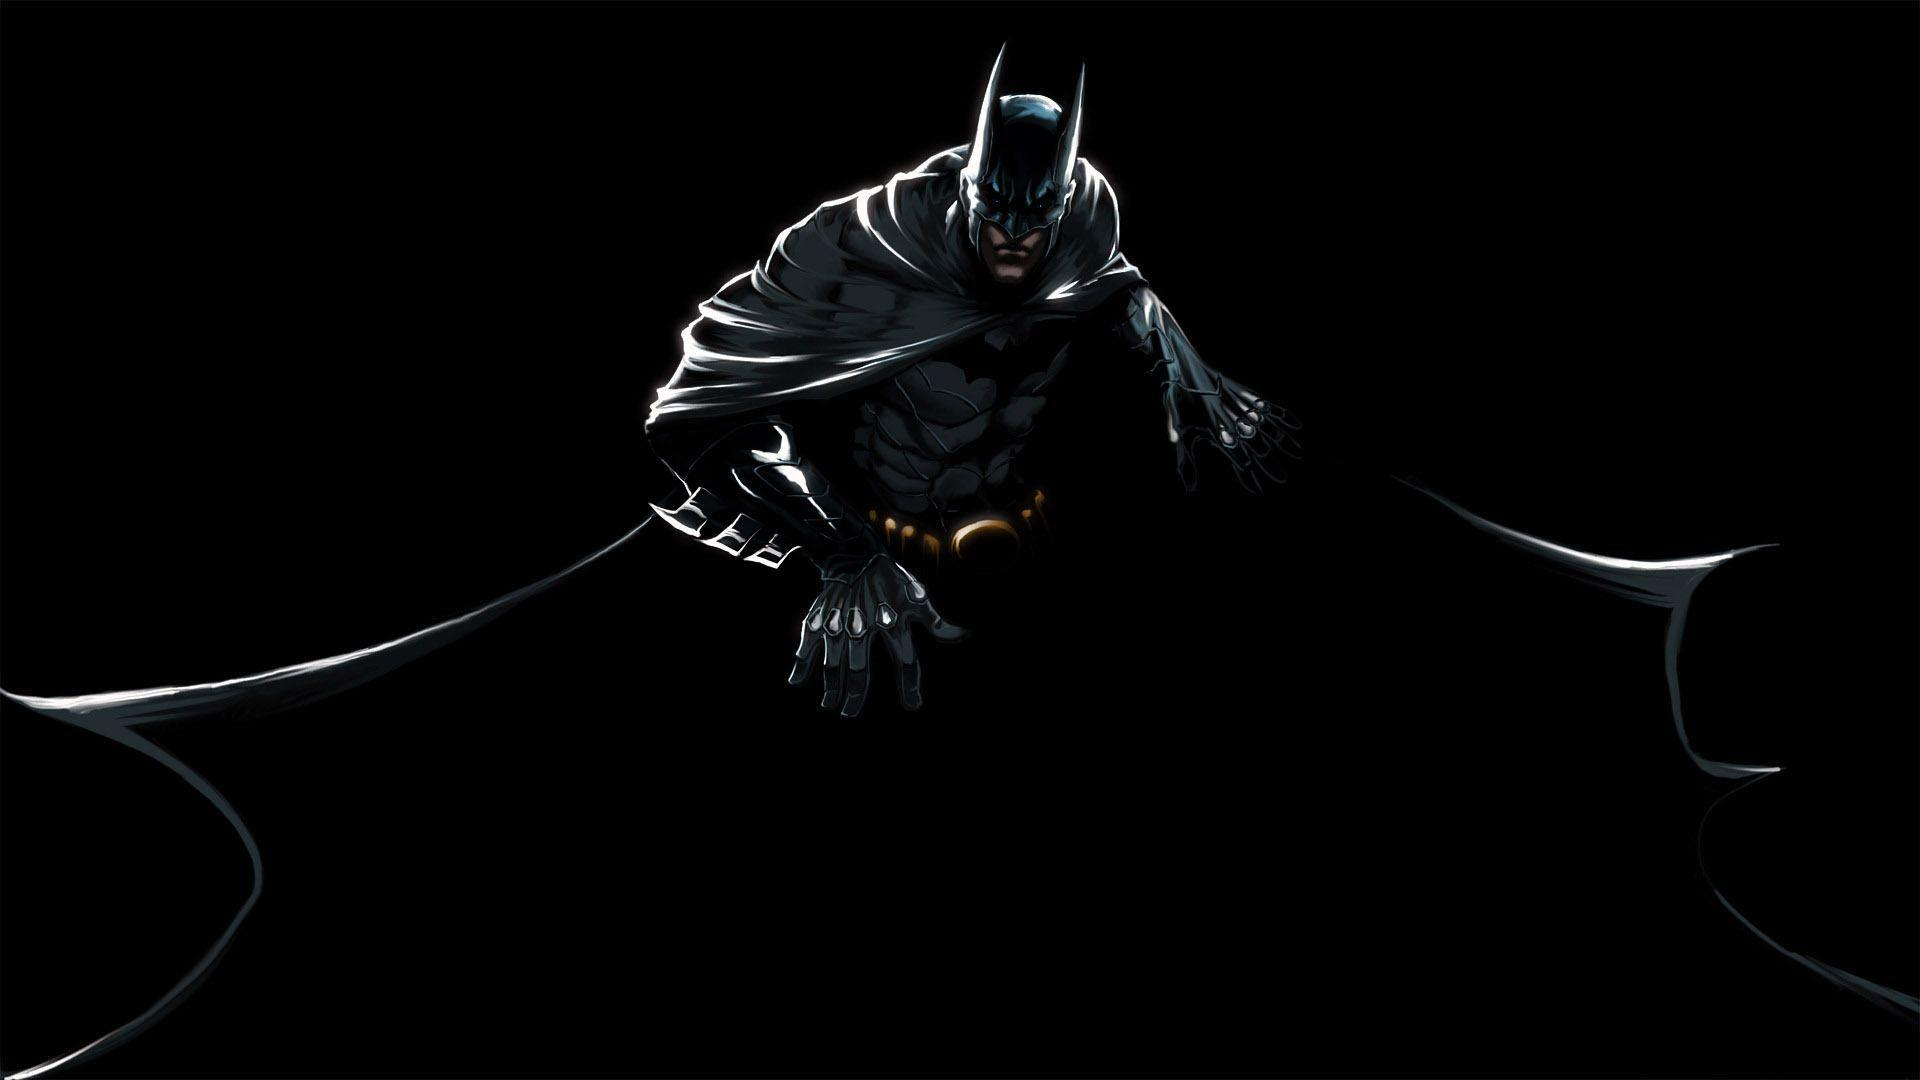 Batman Desktop Backgrounds Wallpaper Cave